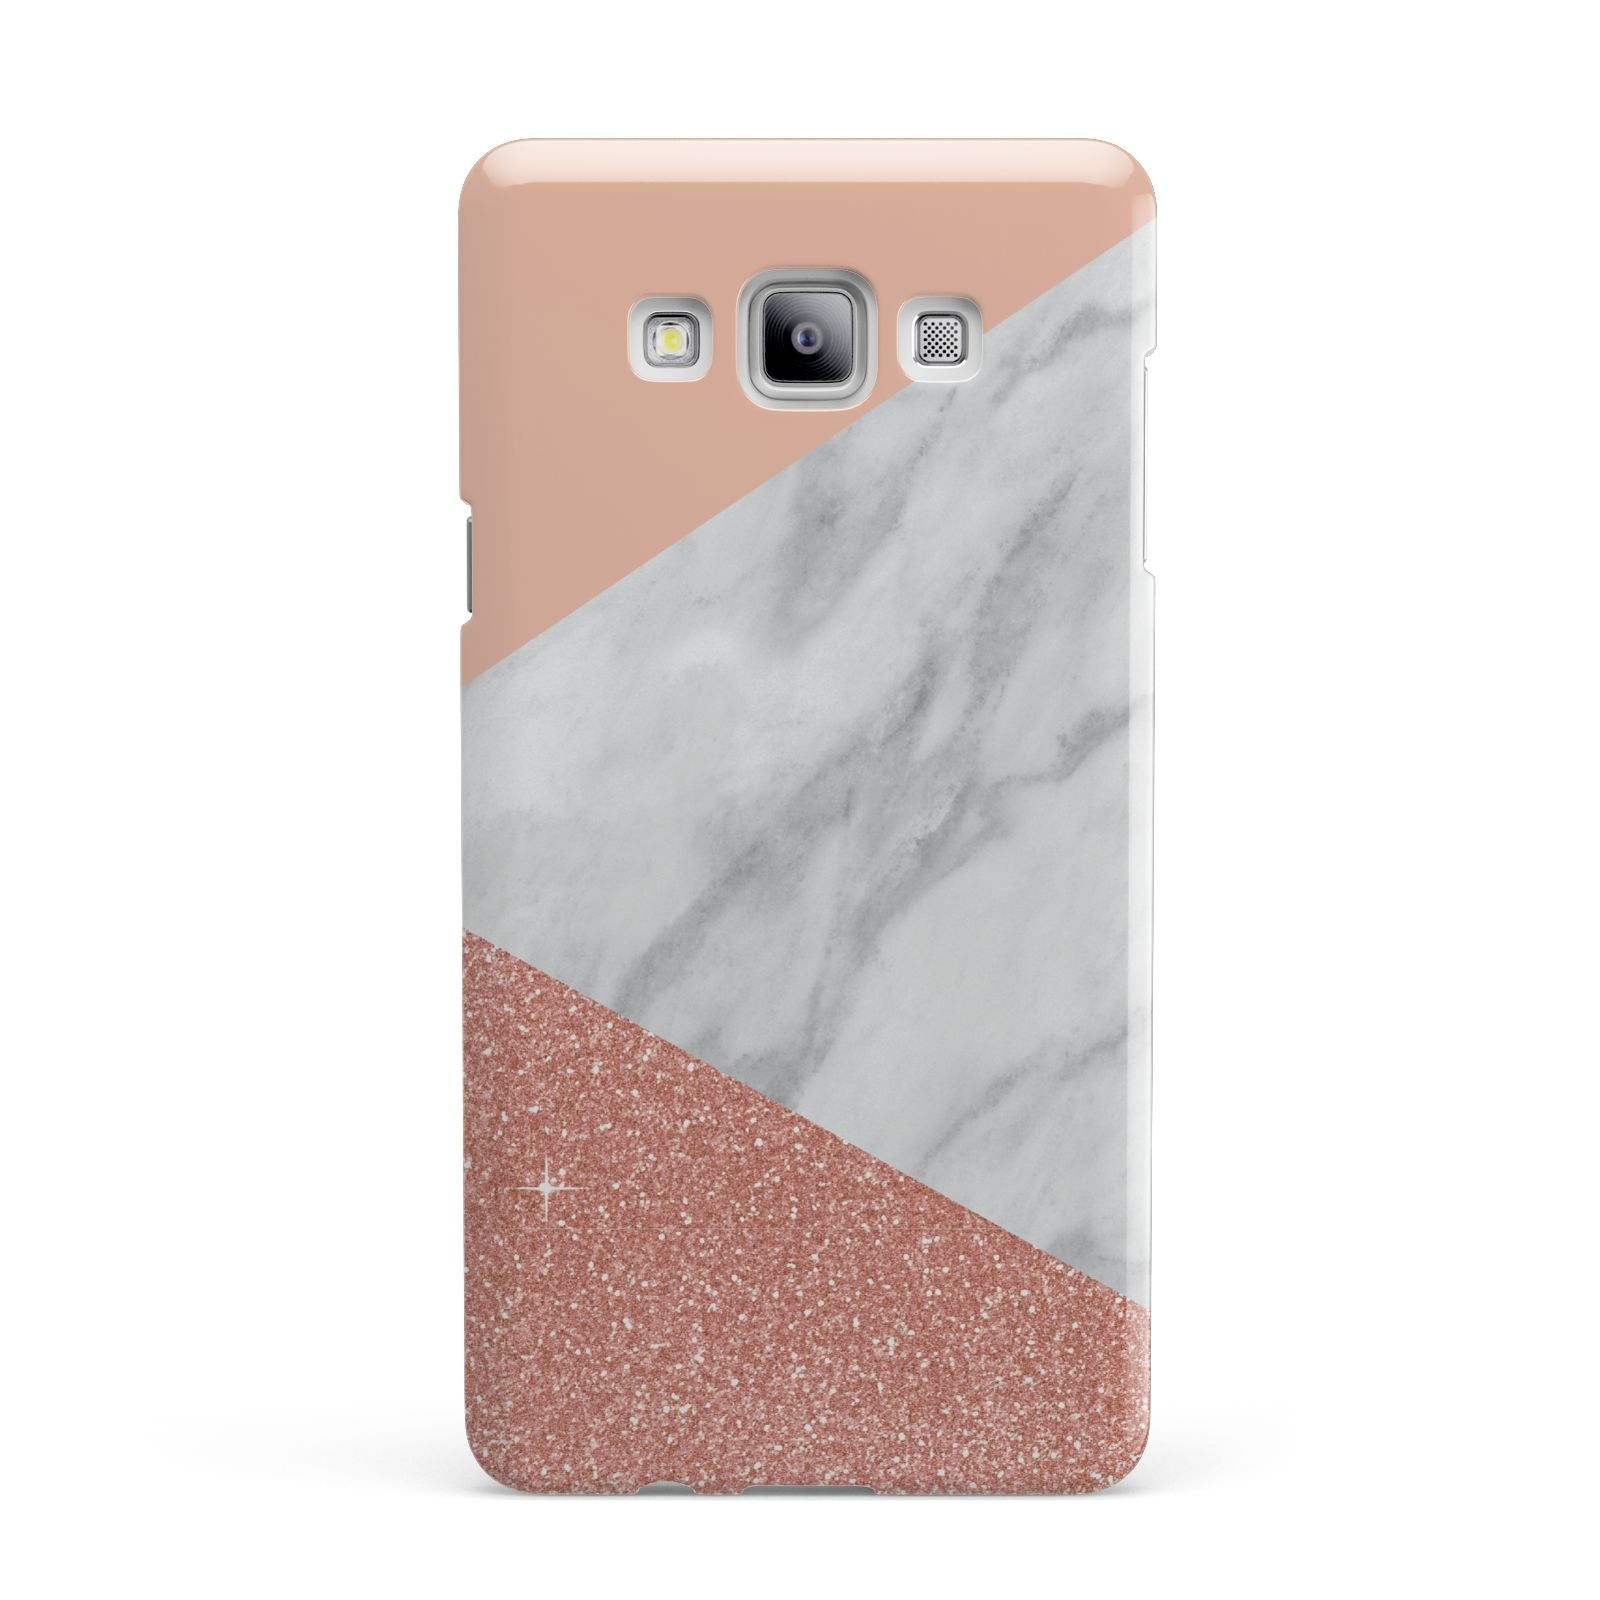 Marble White Rose Gold Samsung Galaxy A7 2015 Case